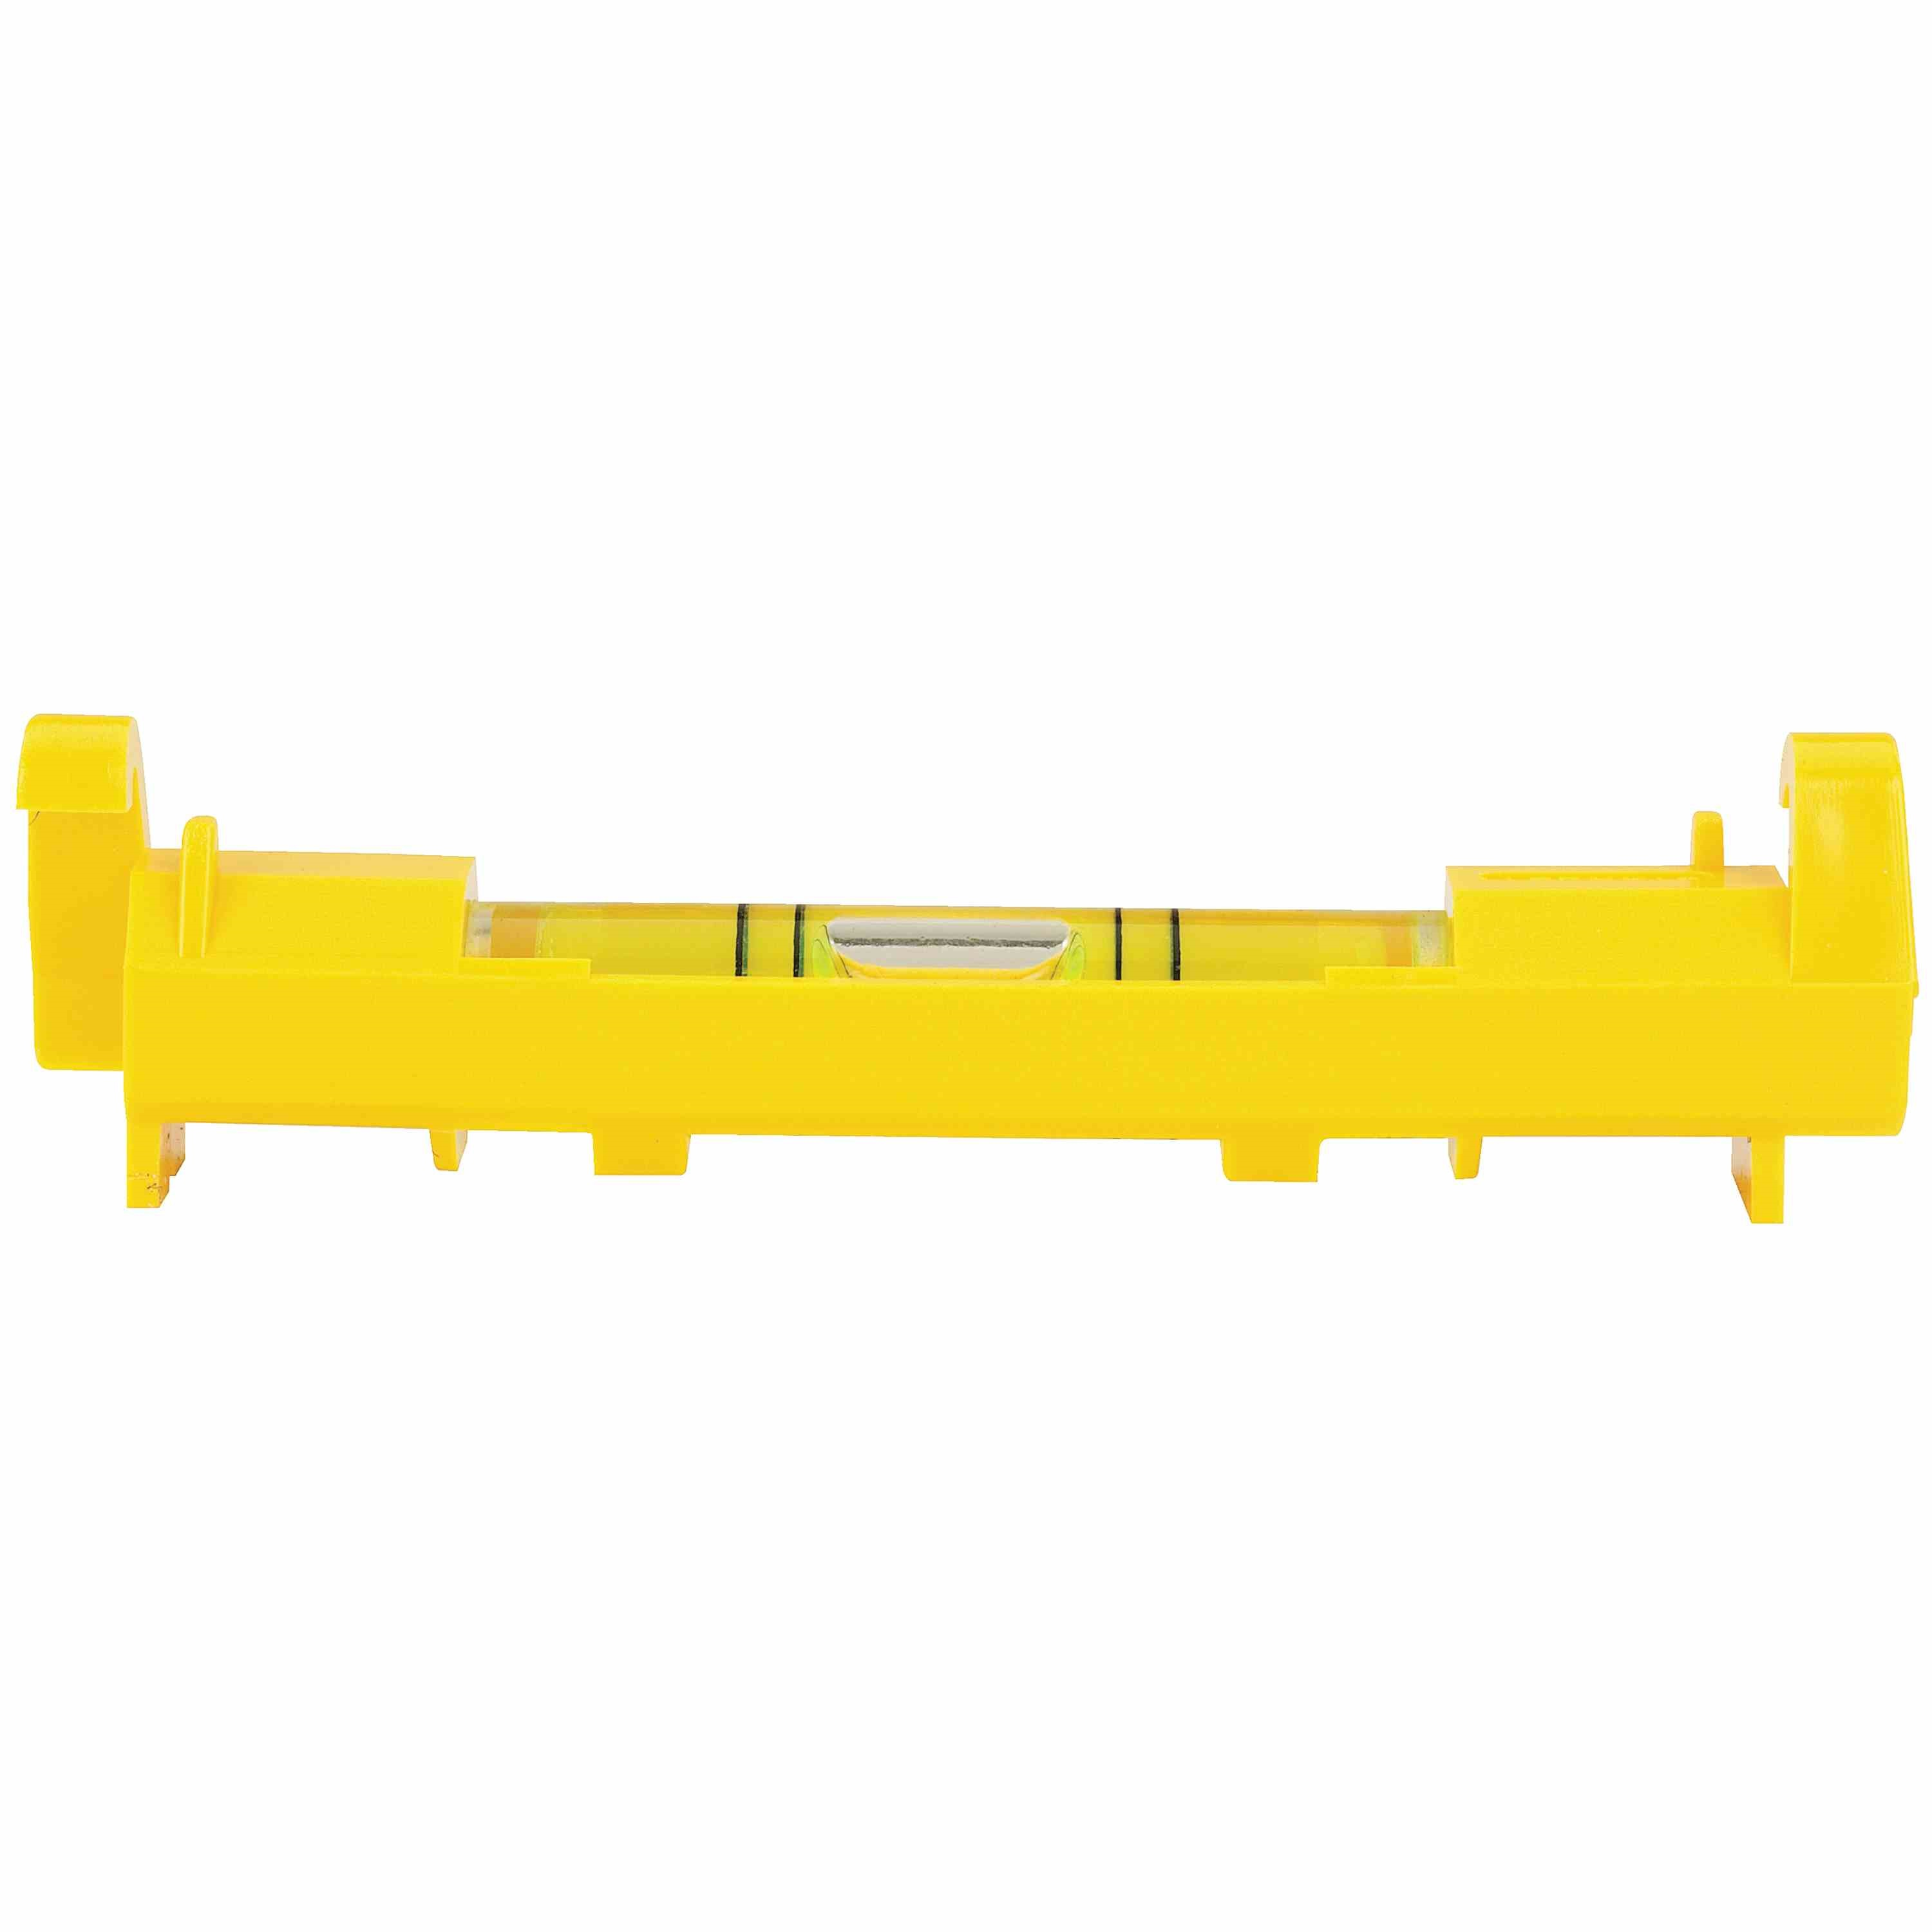 Stanley Tools - 3 in High Visibility Plastic Line Level - 42-193